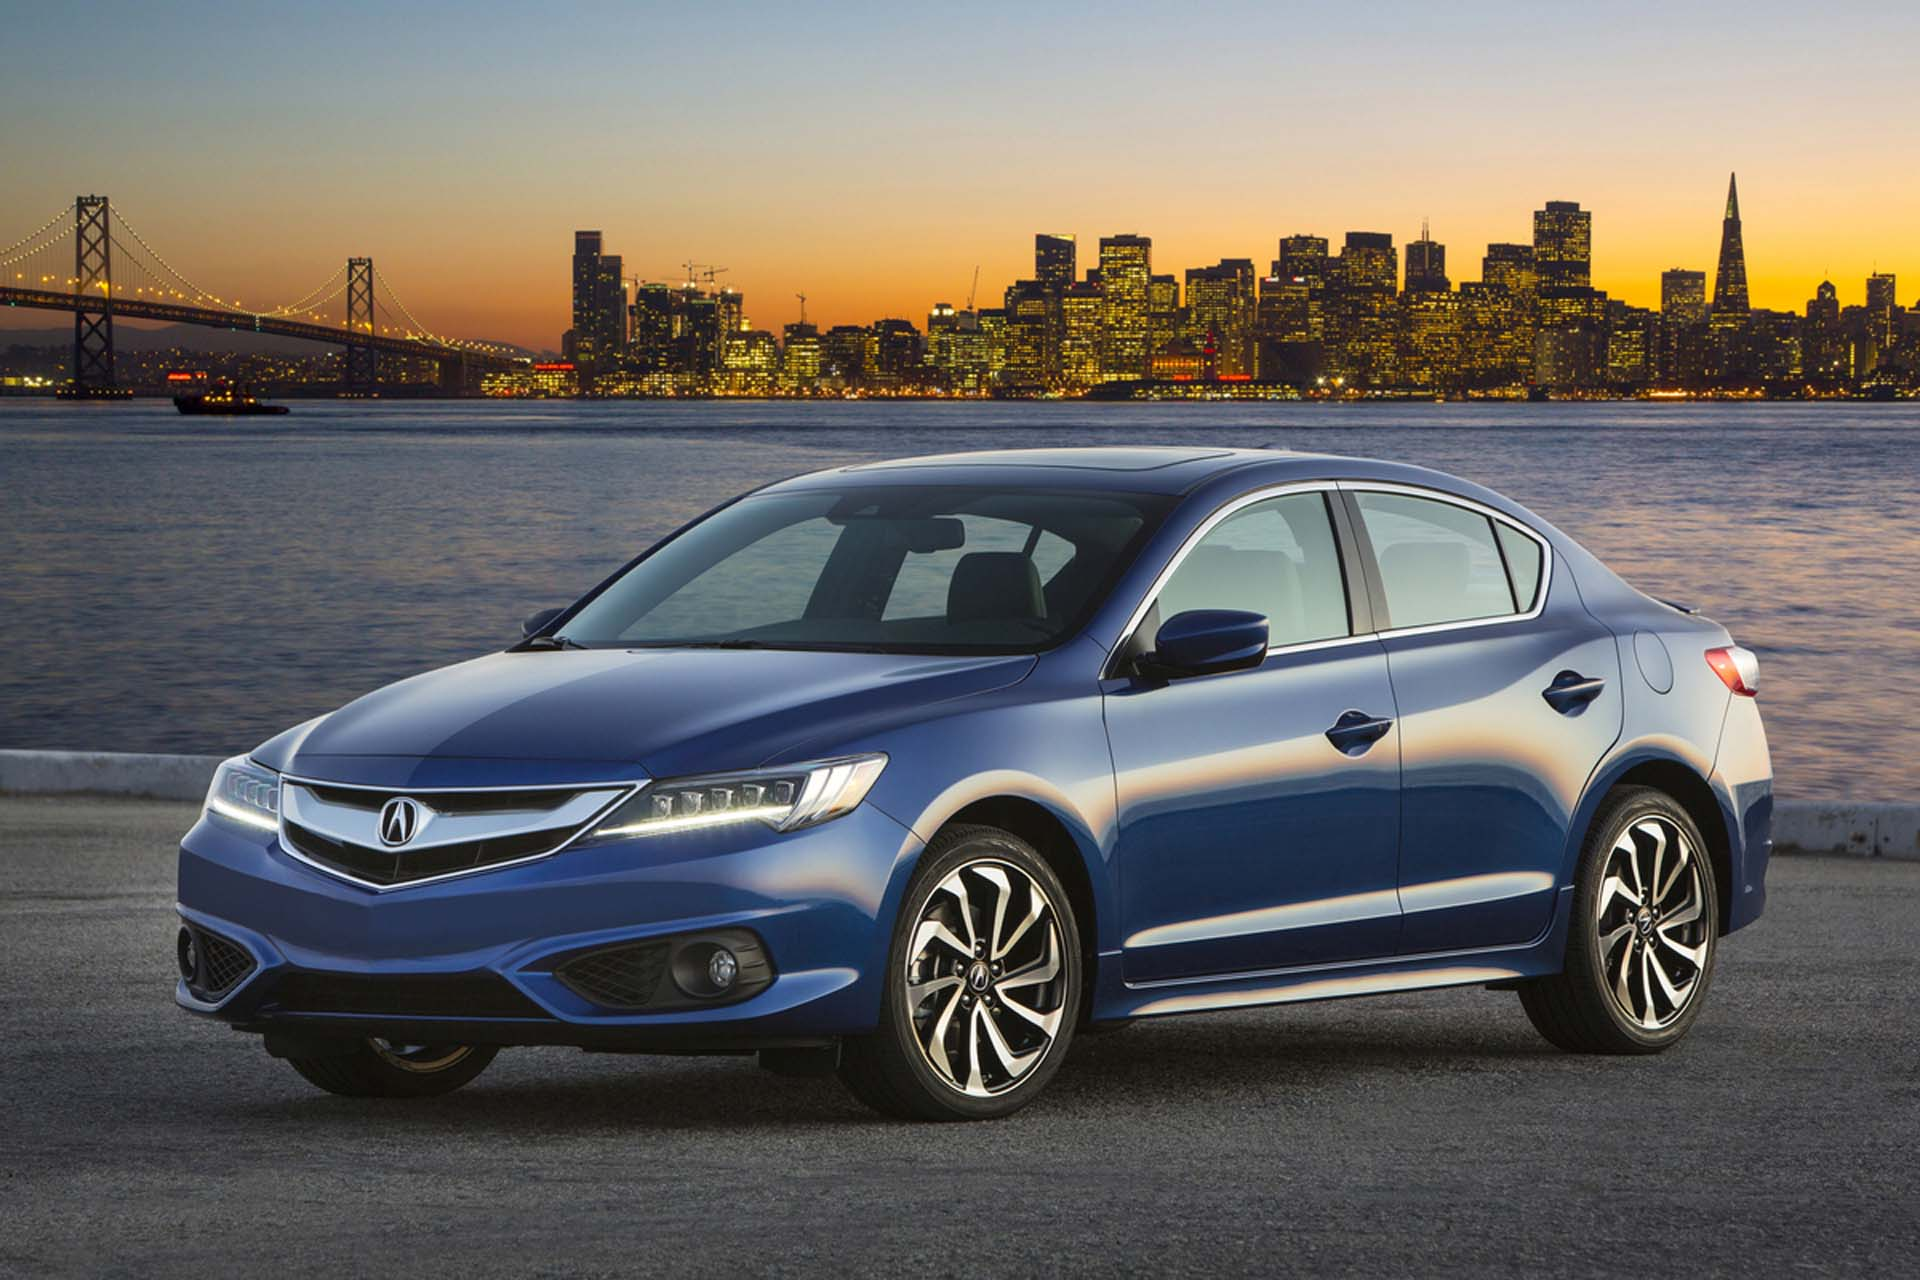 2017 acura ilx styling review the car connection. Black Bedroom Furniture Sets. Home Design Ideas